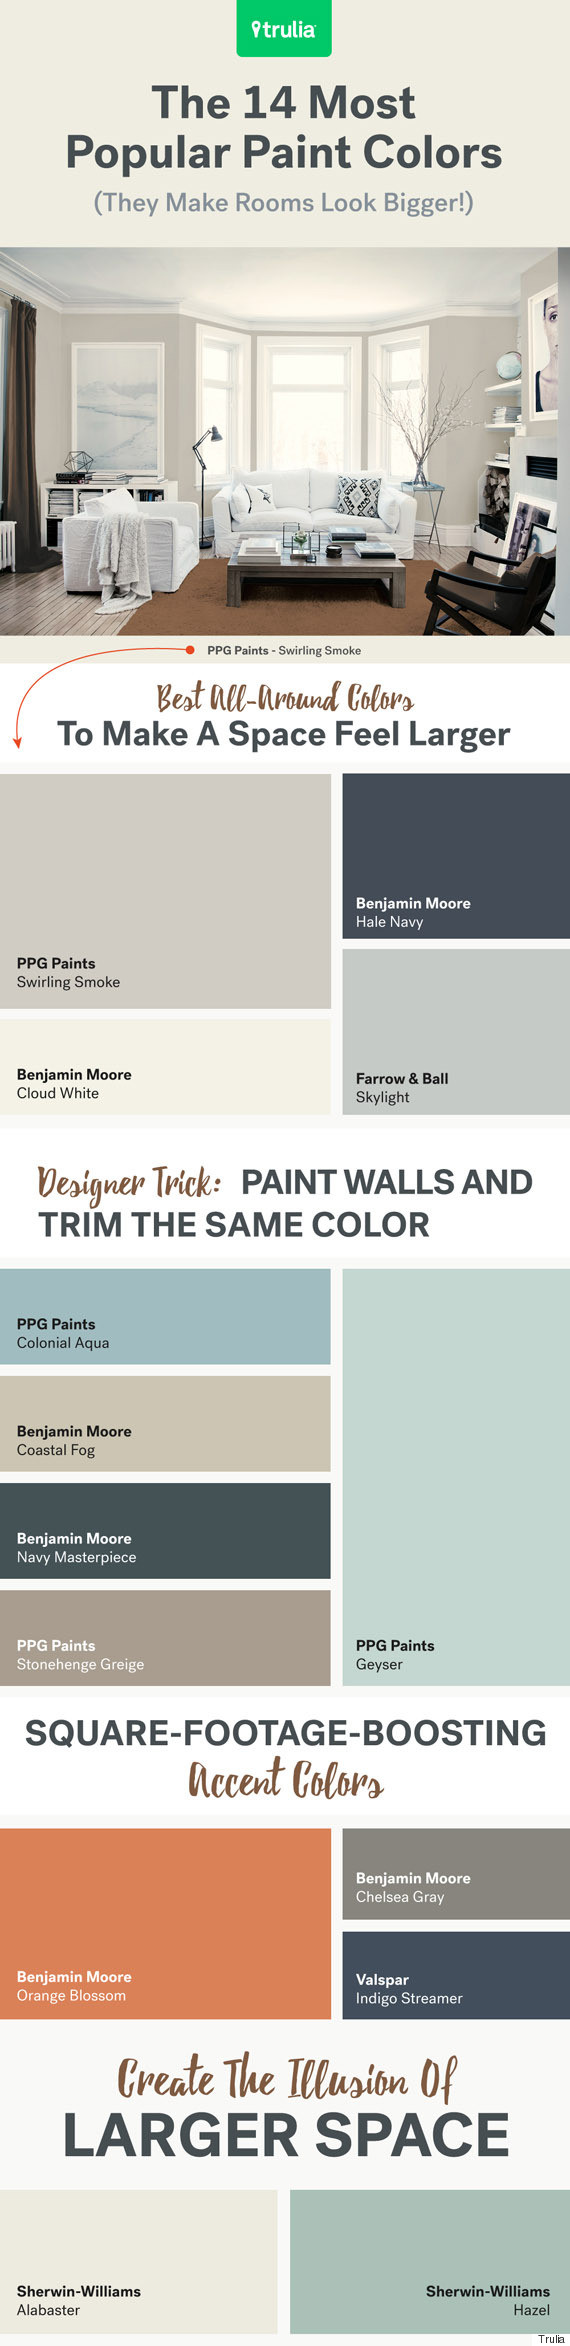 Most Popular Paint Colors New The 14 Most Popular Paint Colors They Make A Room Look Bigger Decorating Inspiration